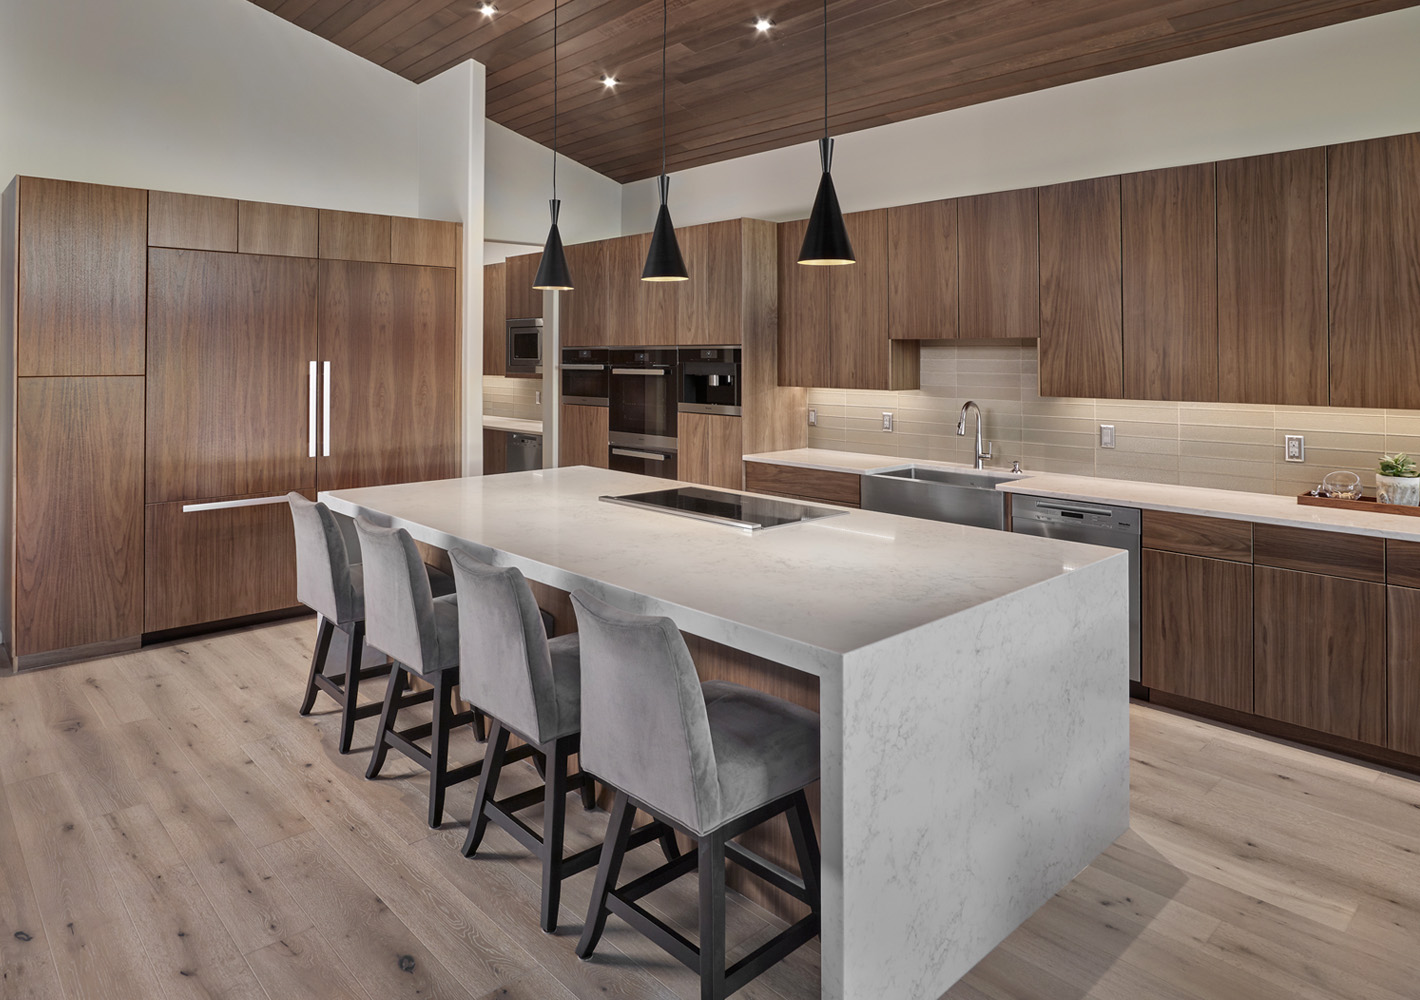 featured_homes_homage-to-mid-century-modern2